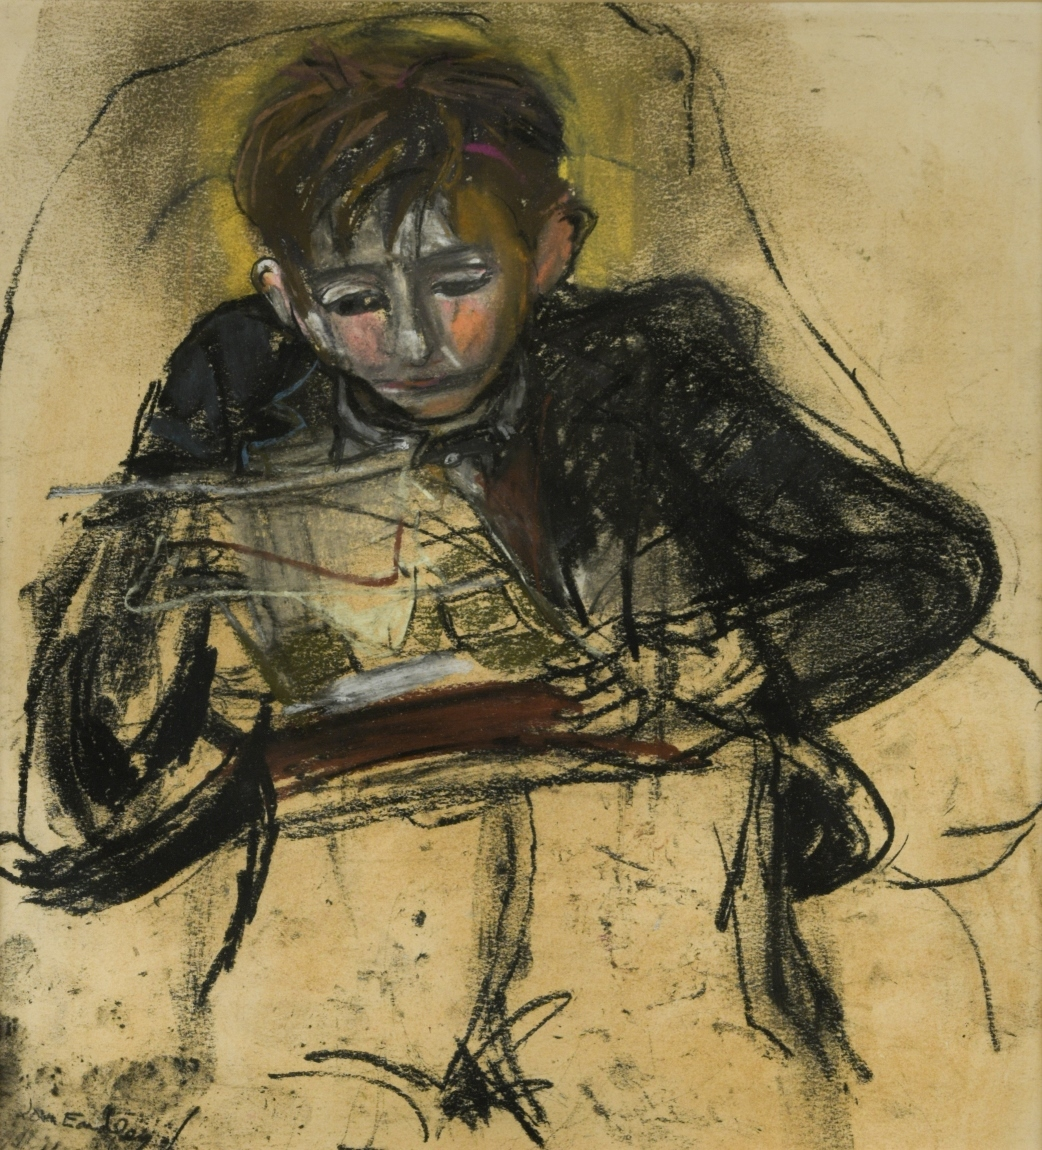 The work by Joan Eardley sold by Hertfordshire County Council